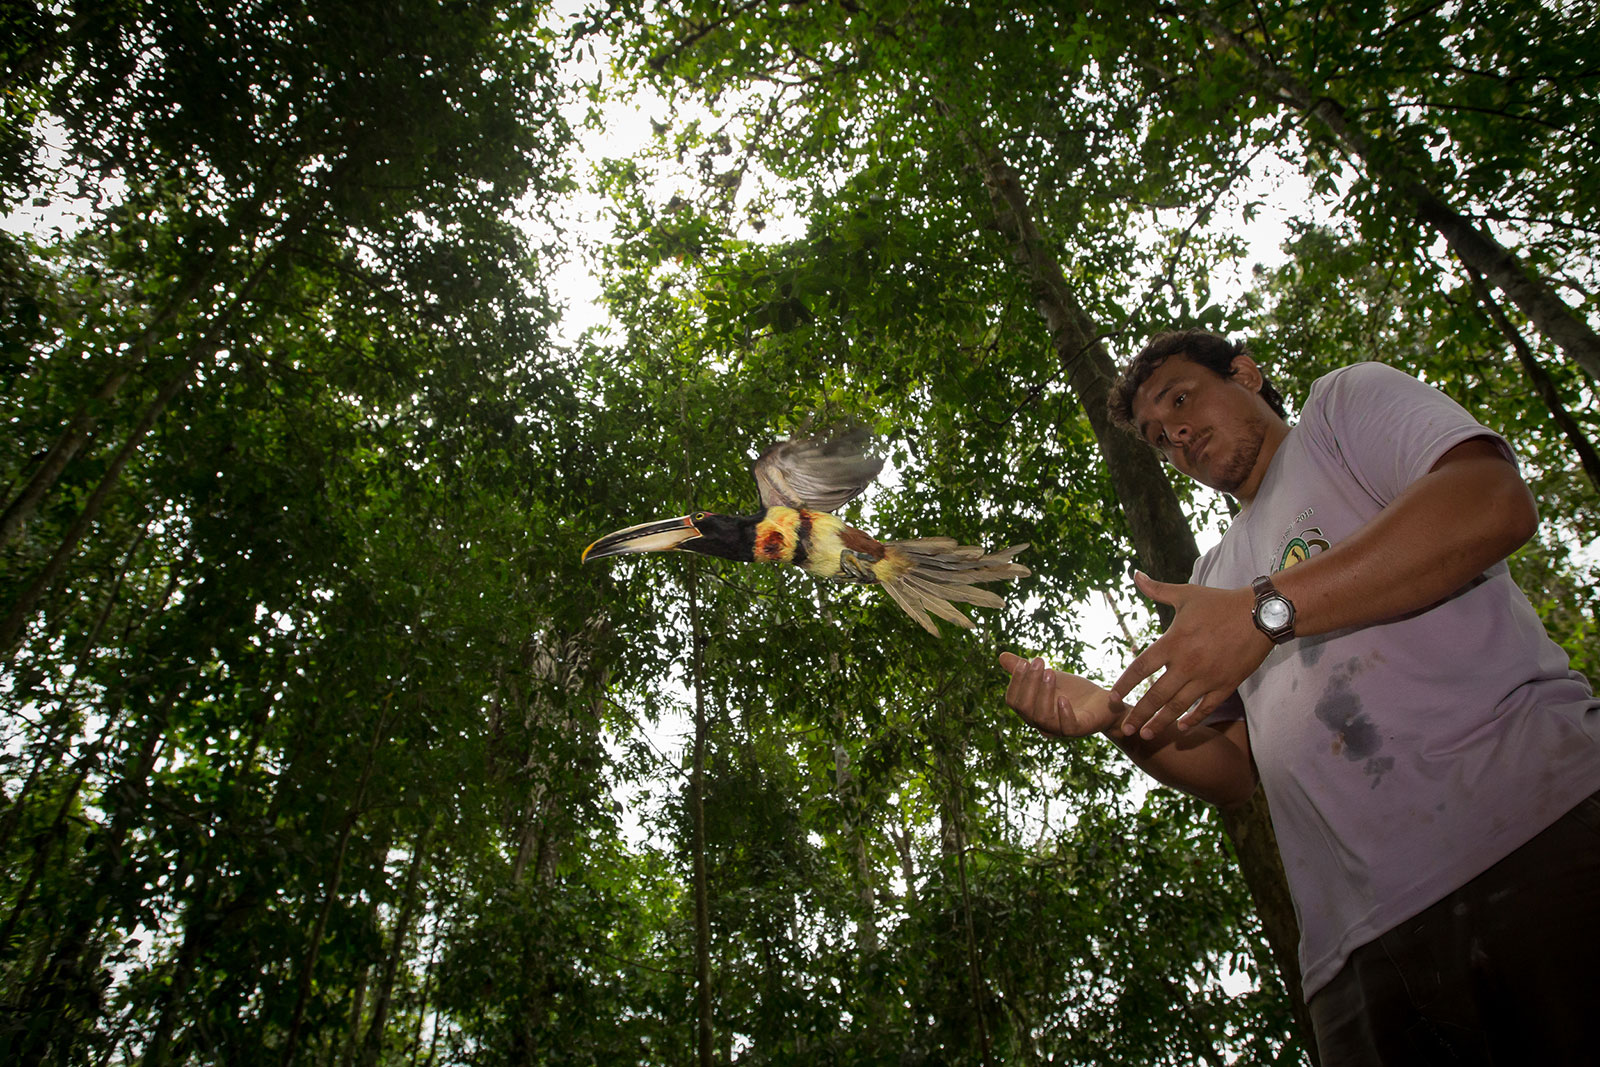 A researcher releases a bird back into the forest